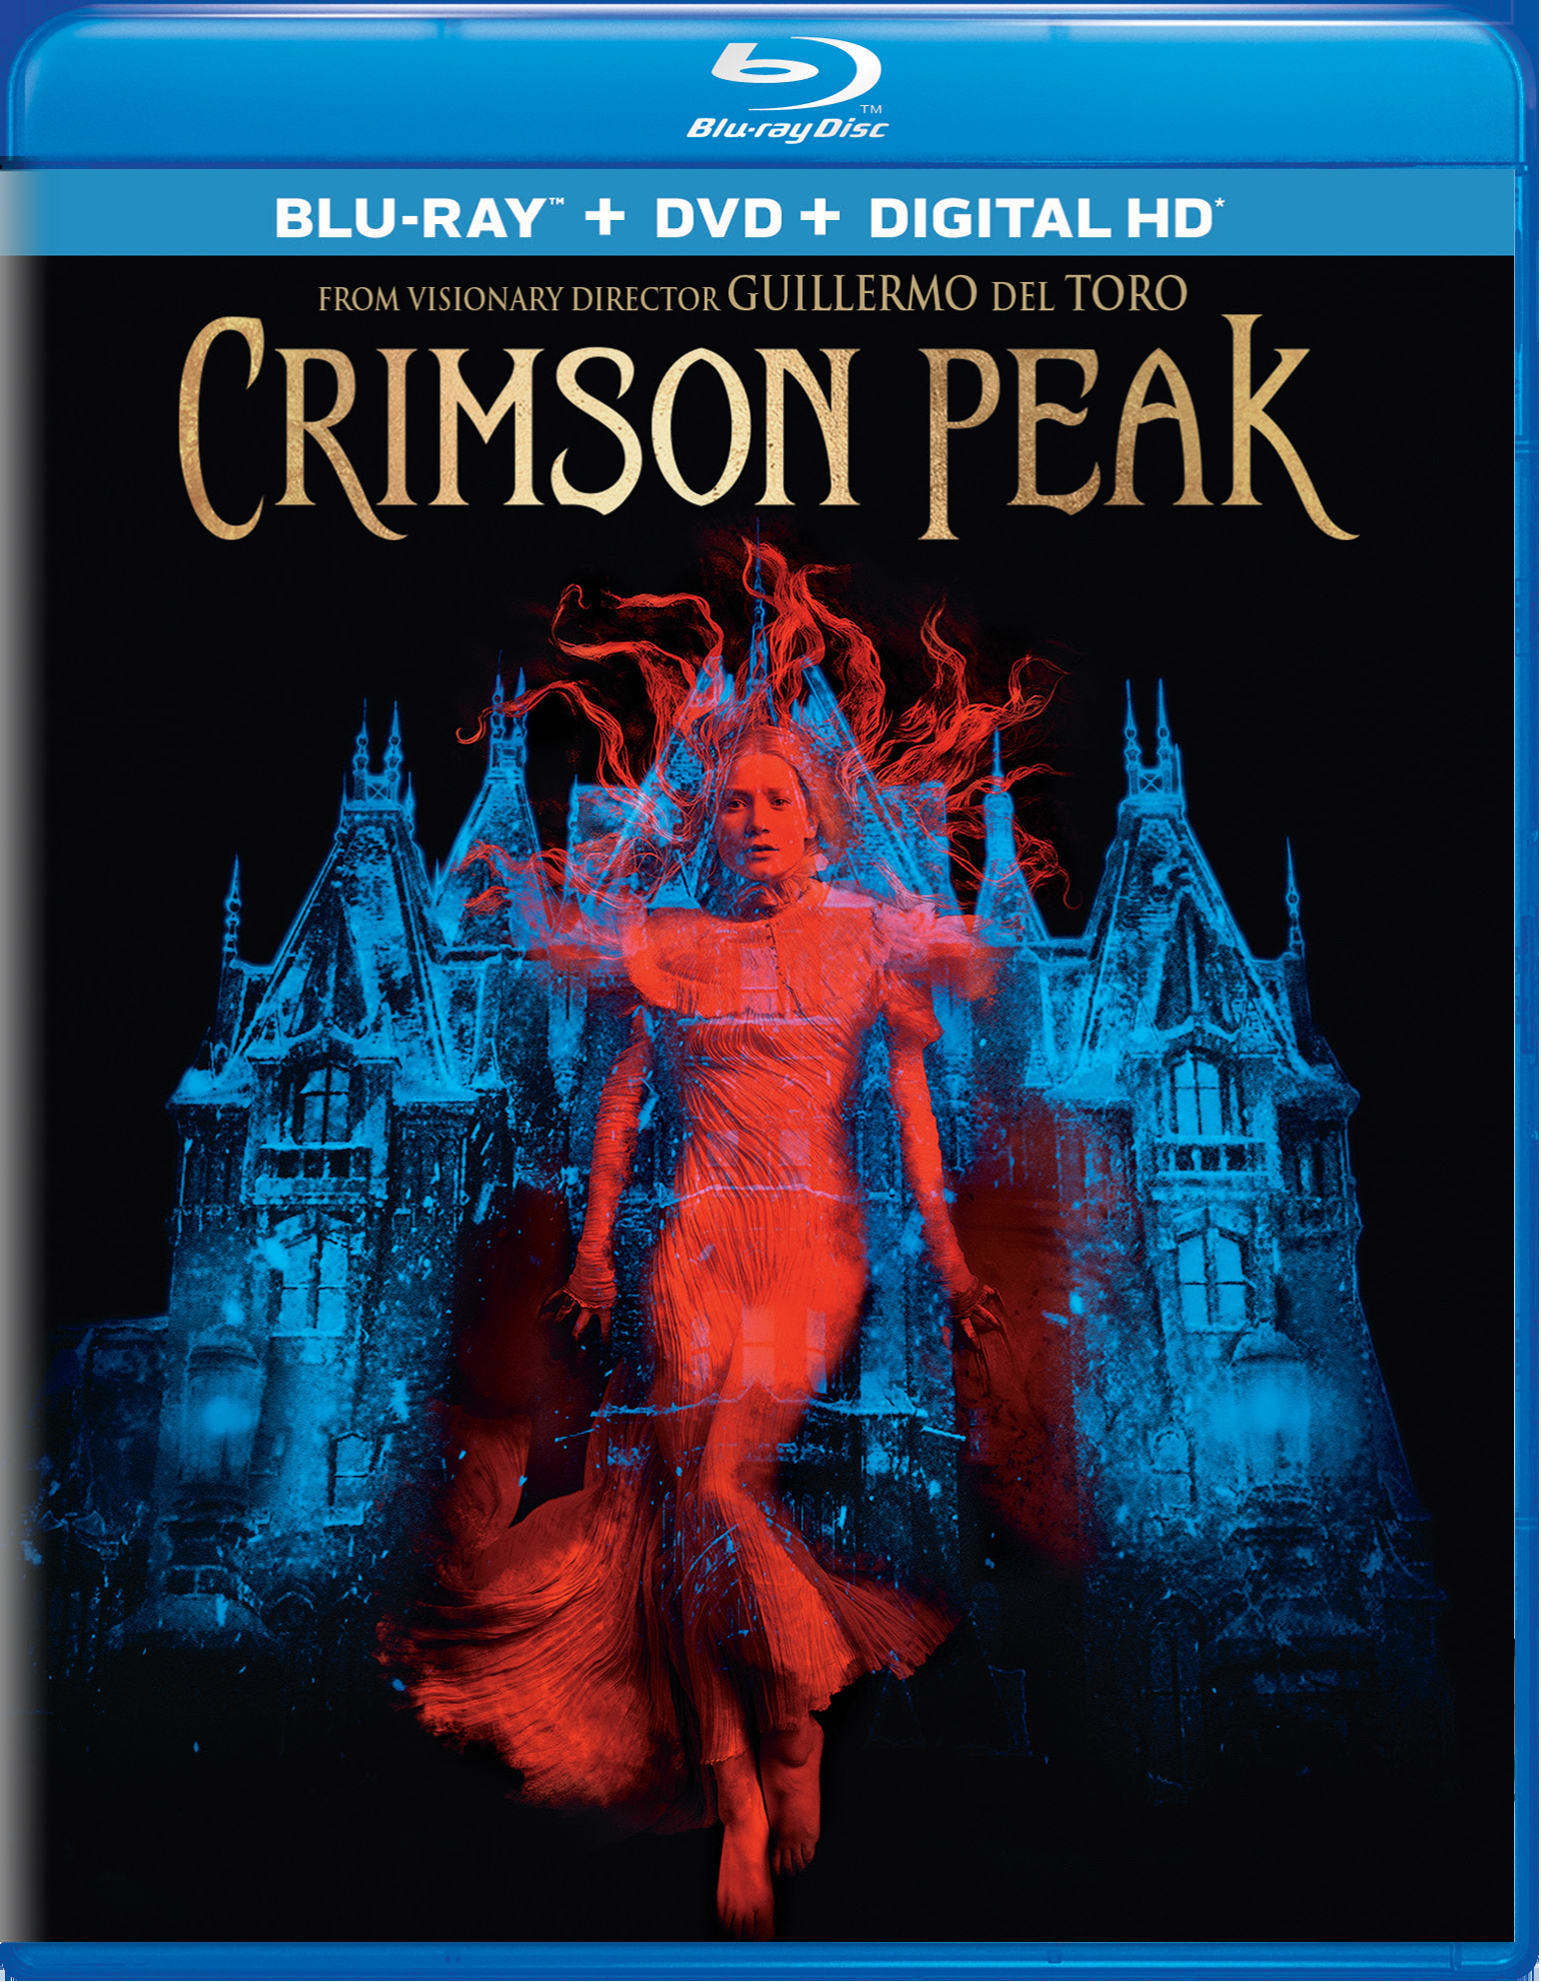 Crimson Peak (DVD + Digital) [Blu-ray]